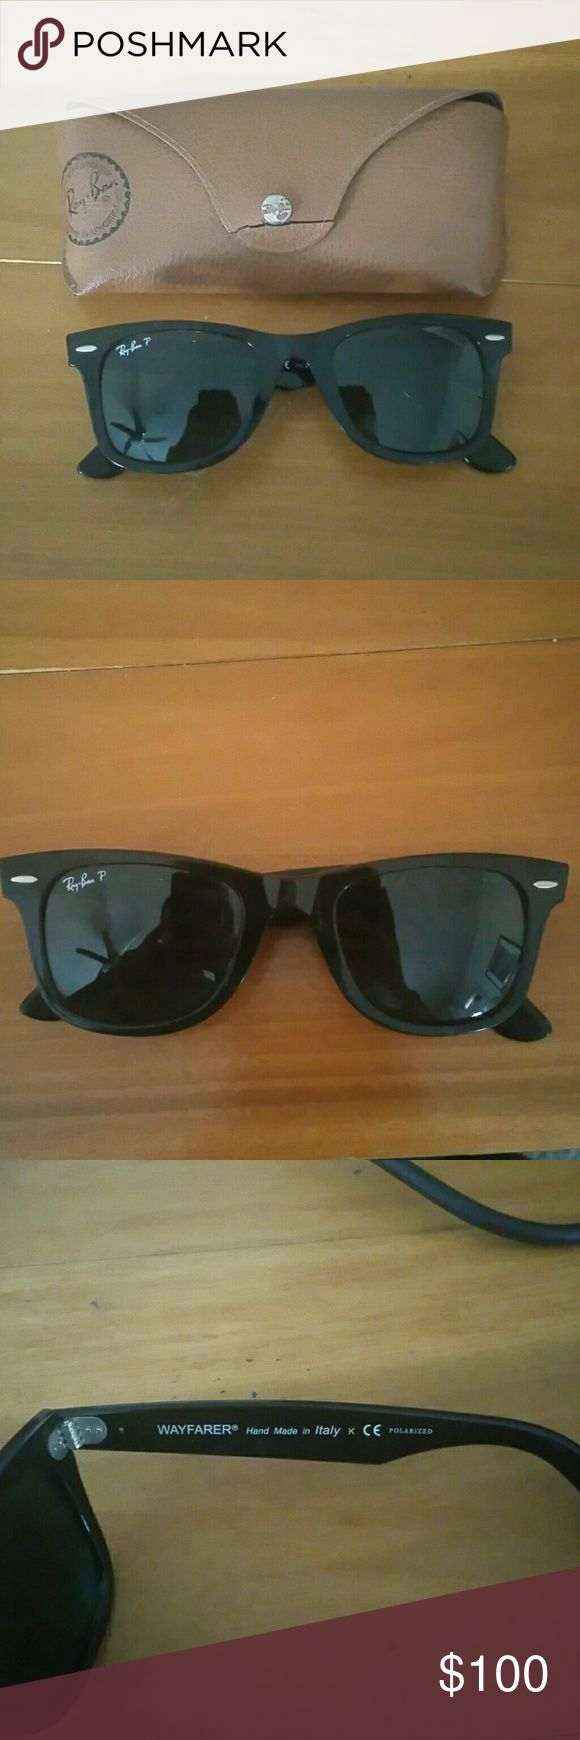 Ray-Ban Wayfarer Polarized This is the glossy black wayfarer model with emerald tinted polarized lens. They are in good condition with minor cosmetic damage that cannot be seen unless you are holding them up to the light. The lens are in good condition with no scratches.The case has a crack in the leather on the front. The wayfarer is a one size fits all unisex sunglass. I am selling this item because they do not fit me well and I want to get new sunglasses. I am also open to trades for…